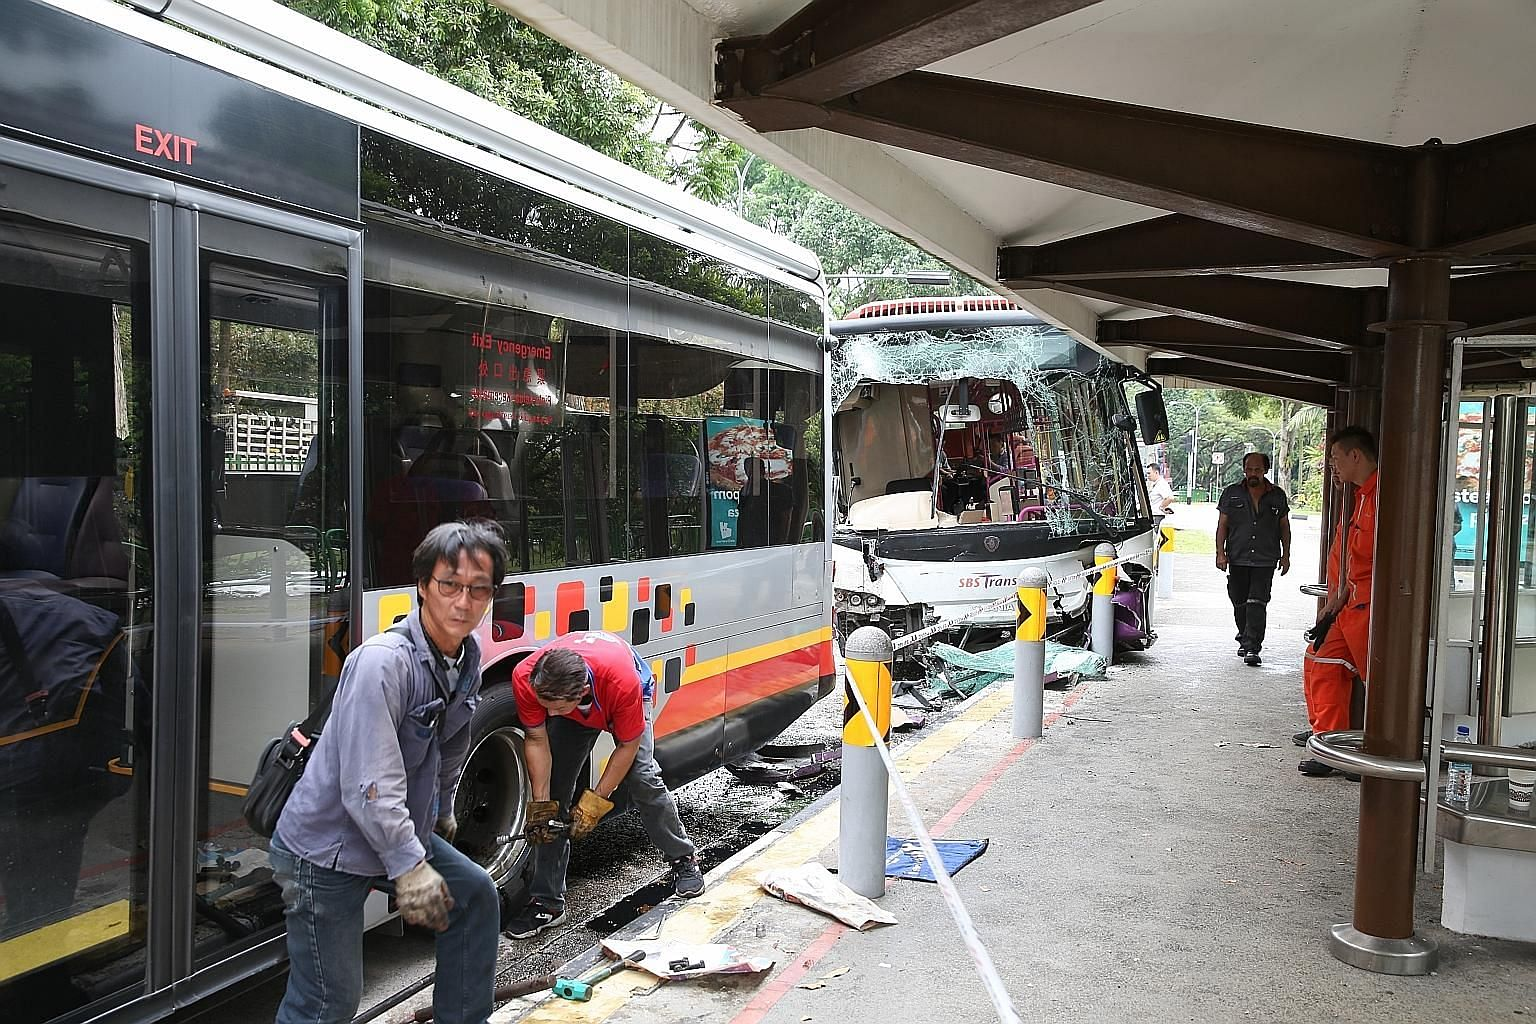 The accident, which happened at a bus stop in Jalan Jurong Kechil at about 9am yesterday, involved SMRT service 970 and SBS Transit service 157. There were no reports of serious injuries.